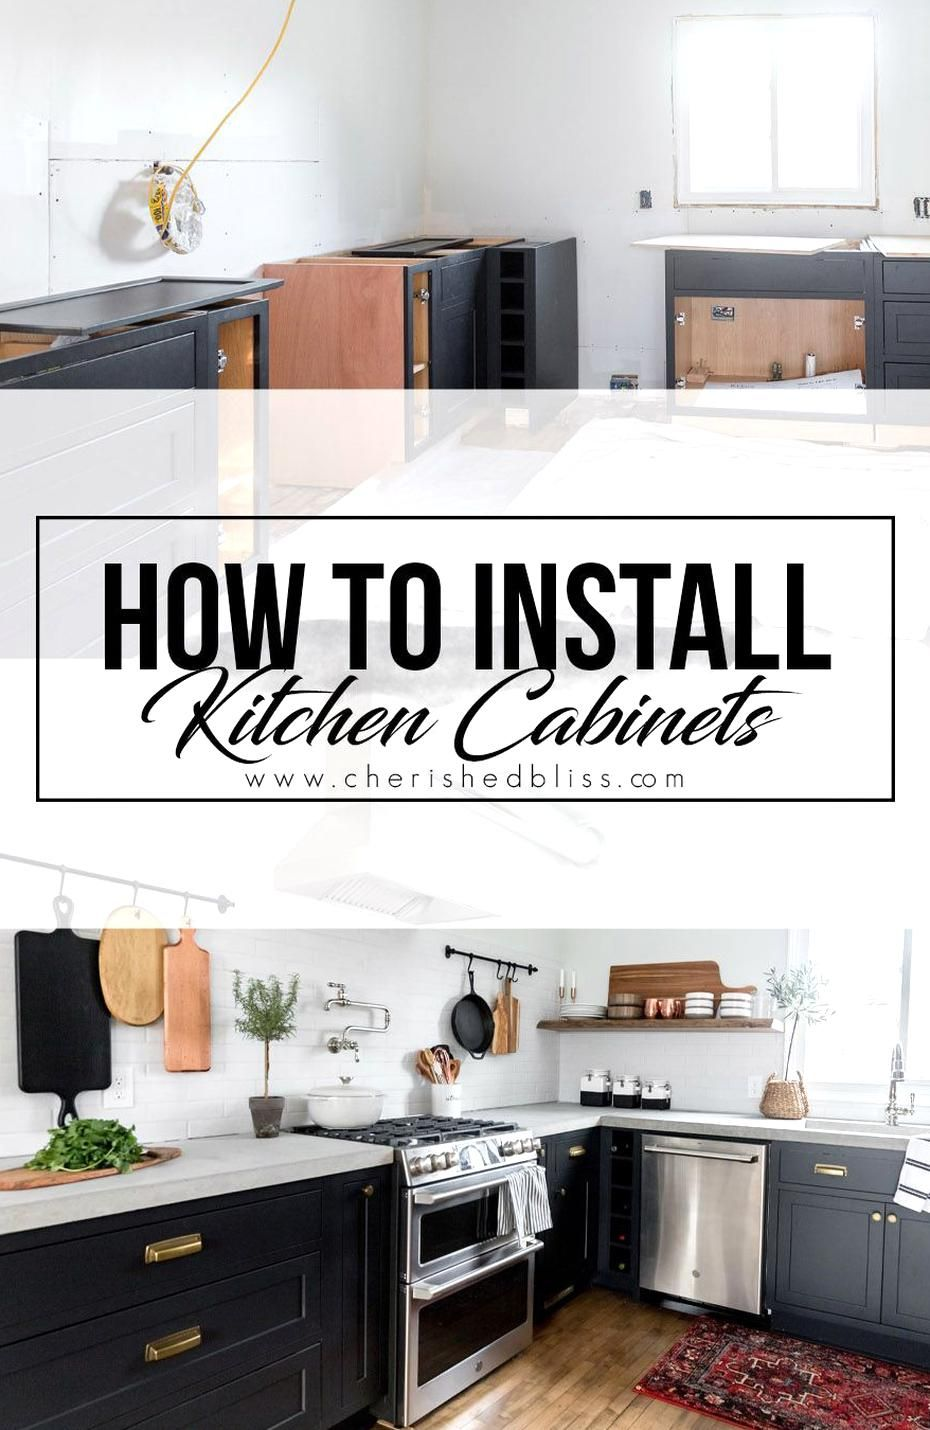 Learning How To Install Kitchen Cabs Yourself Can Save You Tons On A Kitchen Renovatio In 2020 Installing Kitchen Cabinets Kitchen Cabinet Plans Diy Kitchen Renovation